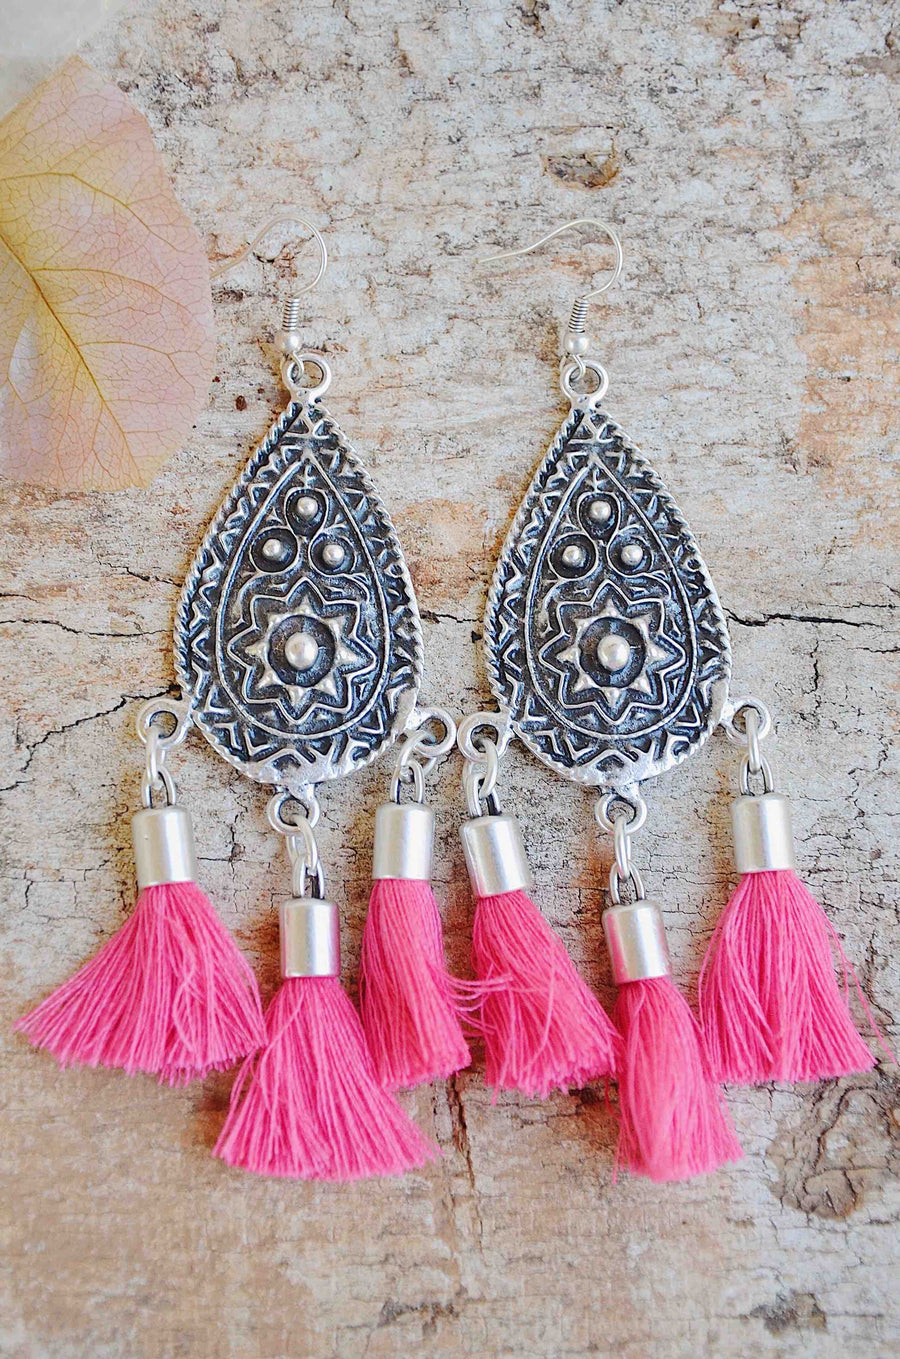 Handmade Silver Tassel Earrings in Pink